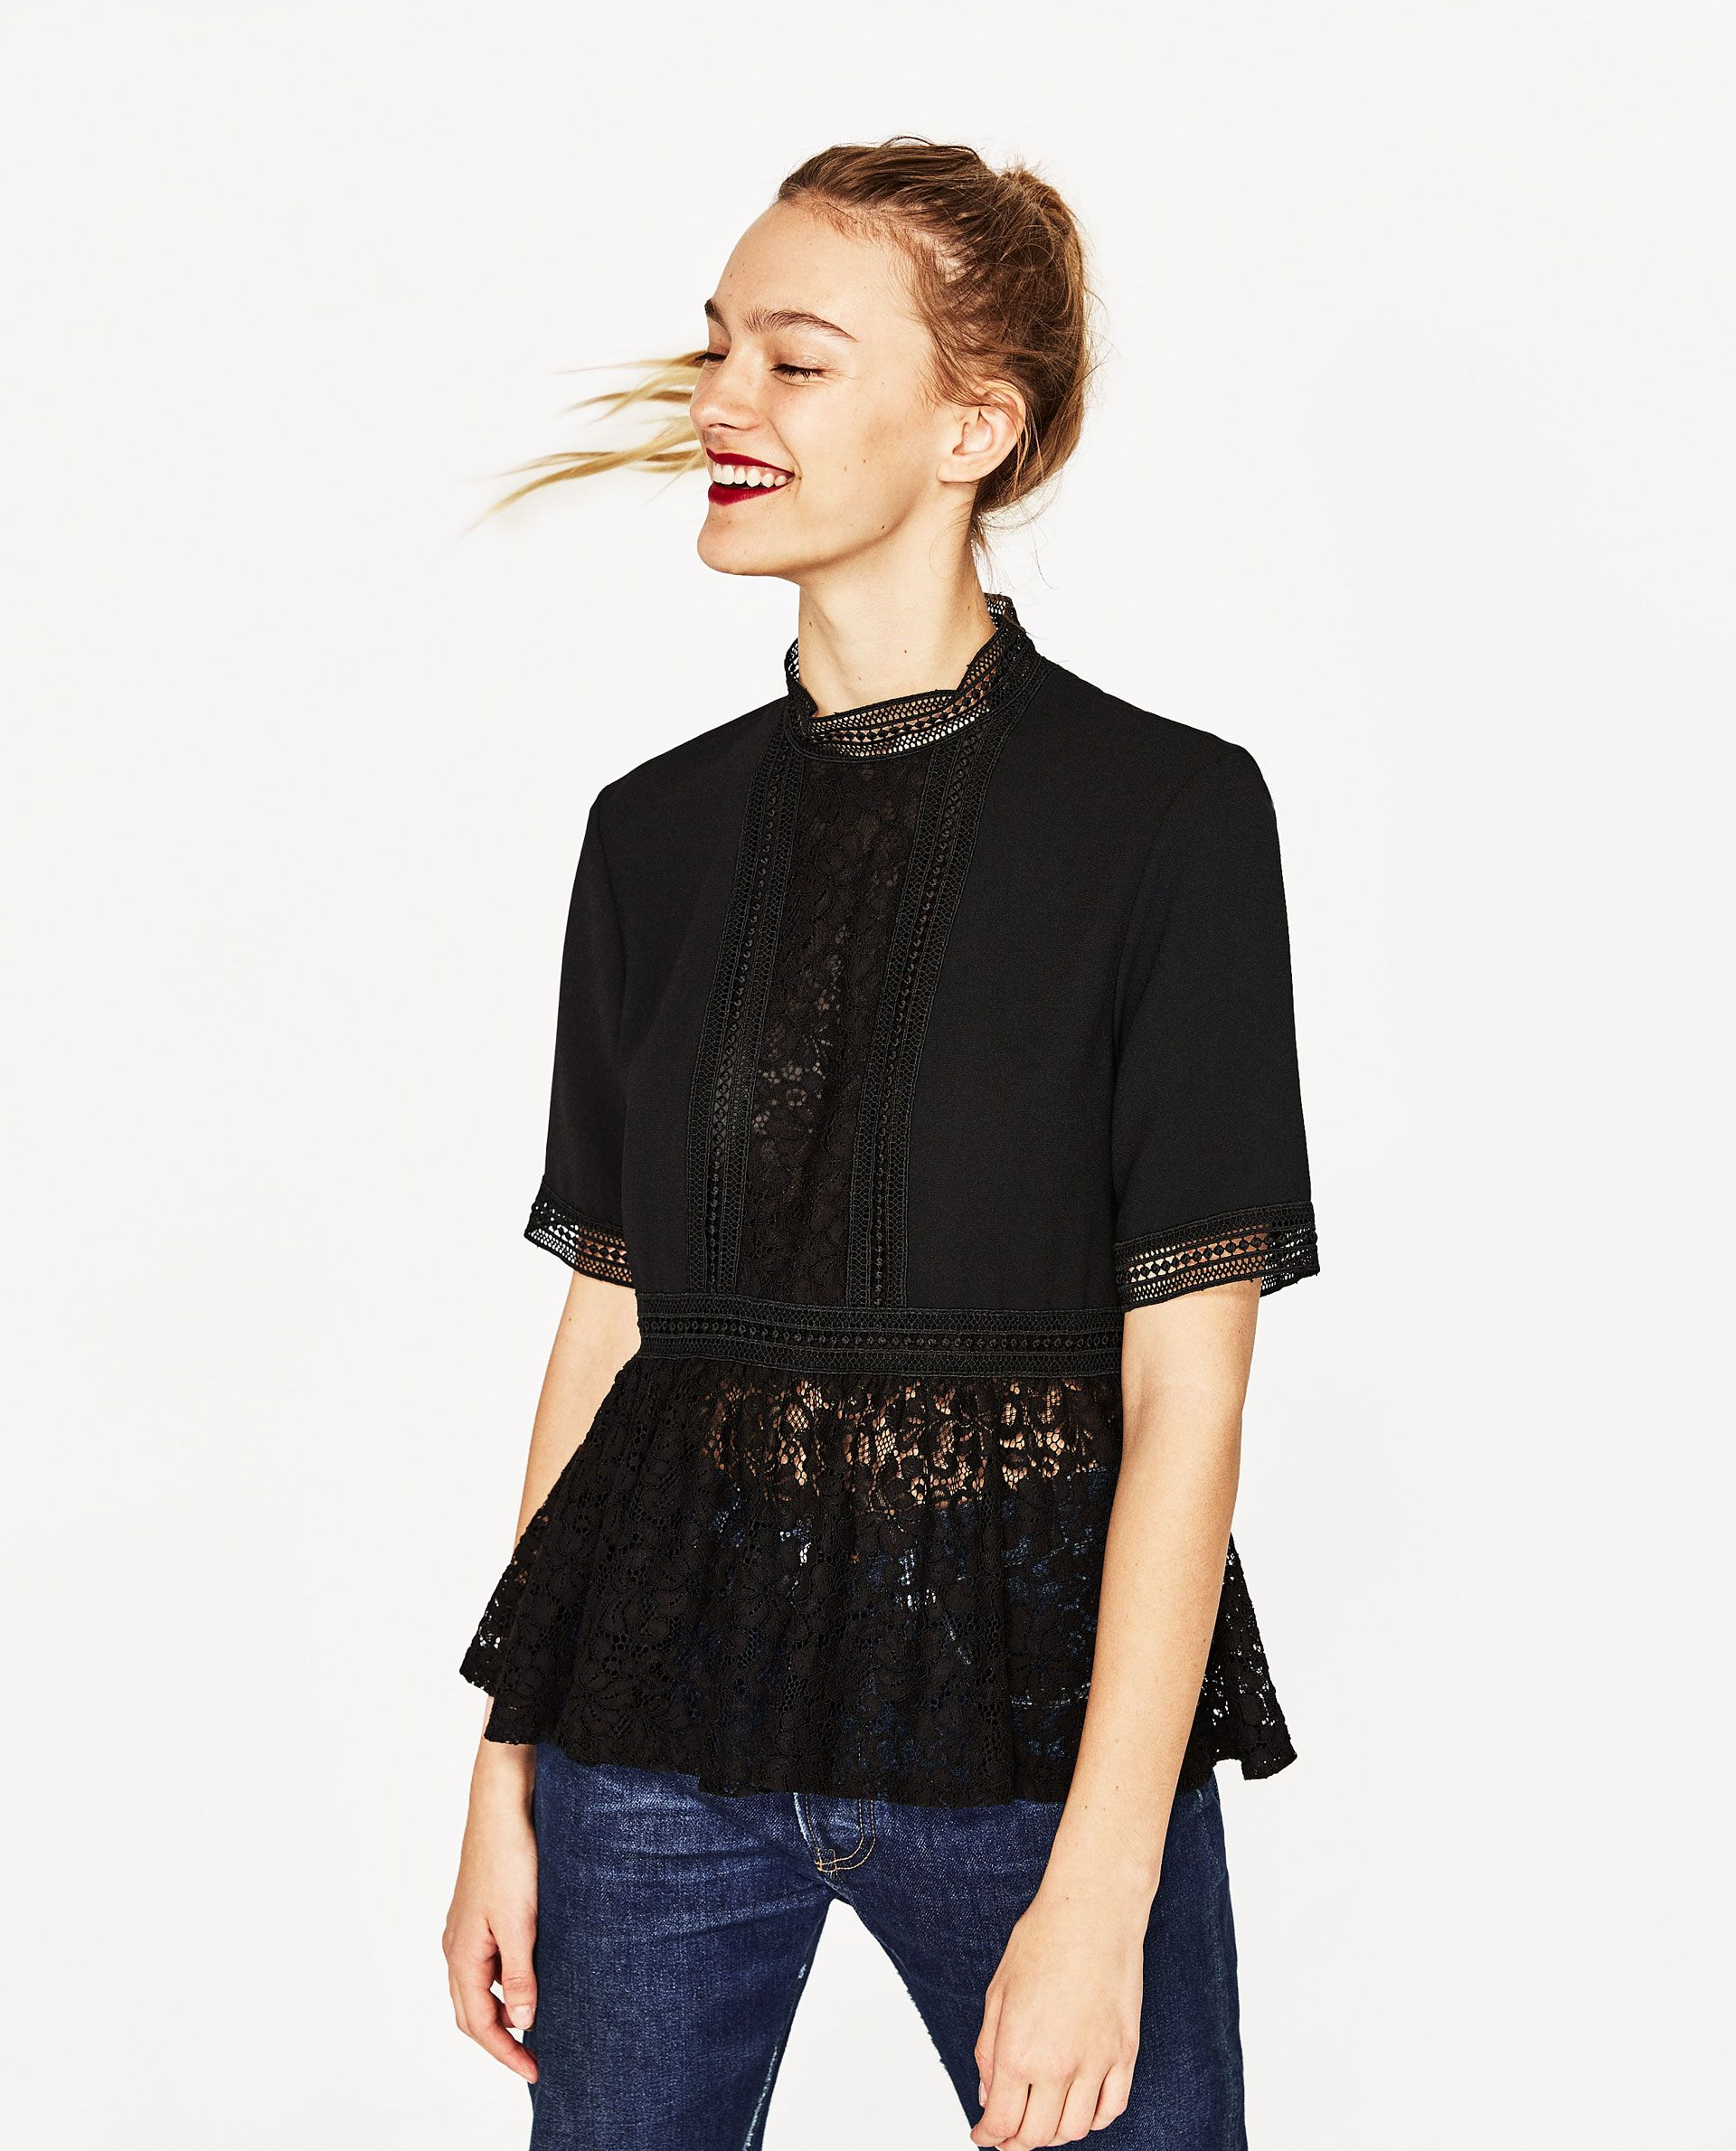 994e5f1748 Image 5 of CONTRAST LACE TOP from Zara | wishlist in 2019 | Lace ...